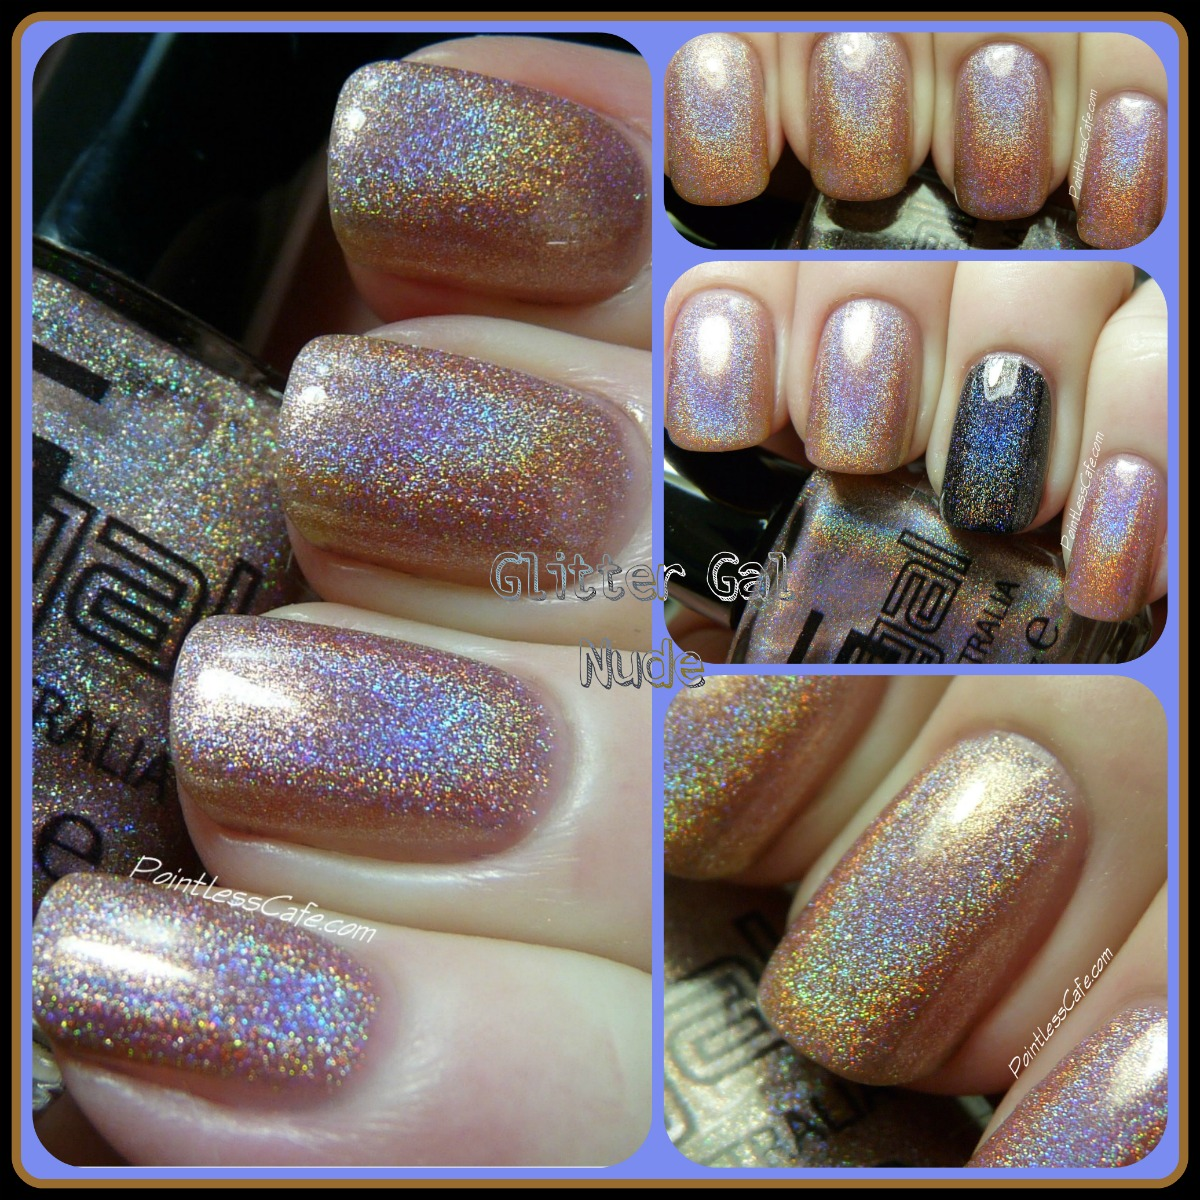 budding beauties nude Nude is a light tan or champagne linear holographic polish with strong blue and purple rainbow arcs. Same great formula as Lizard Belly.